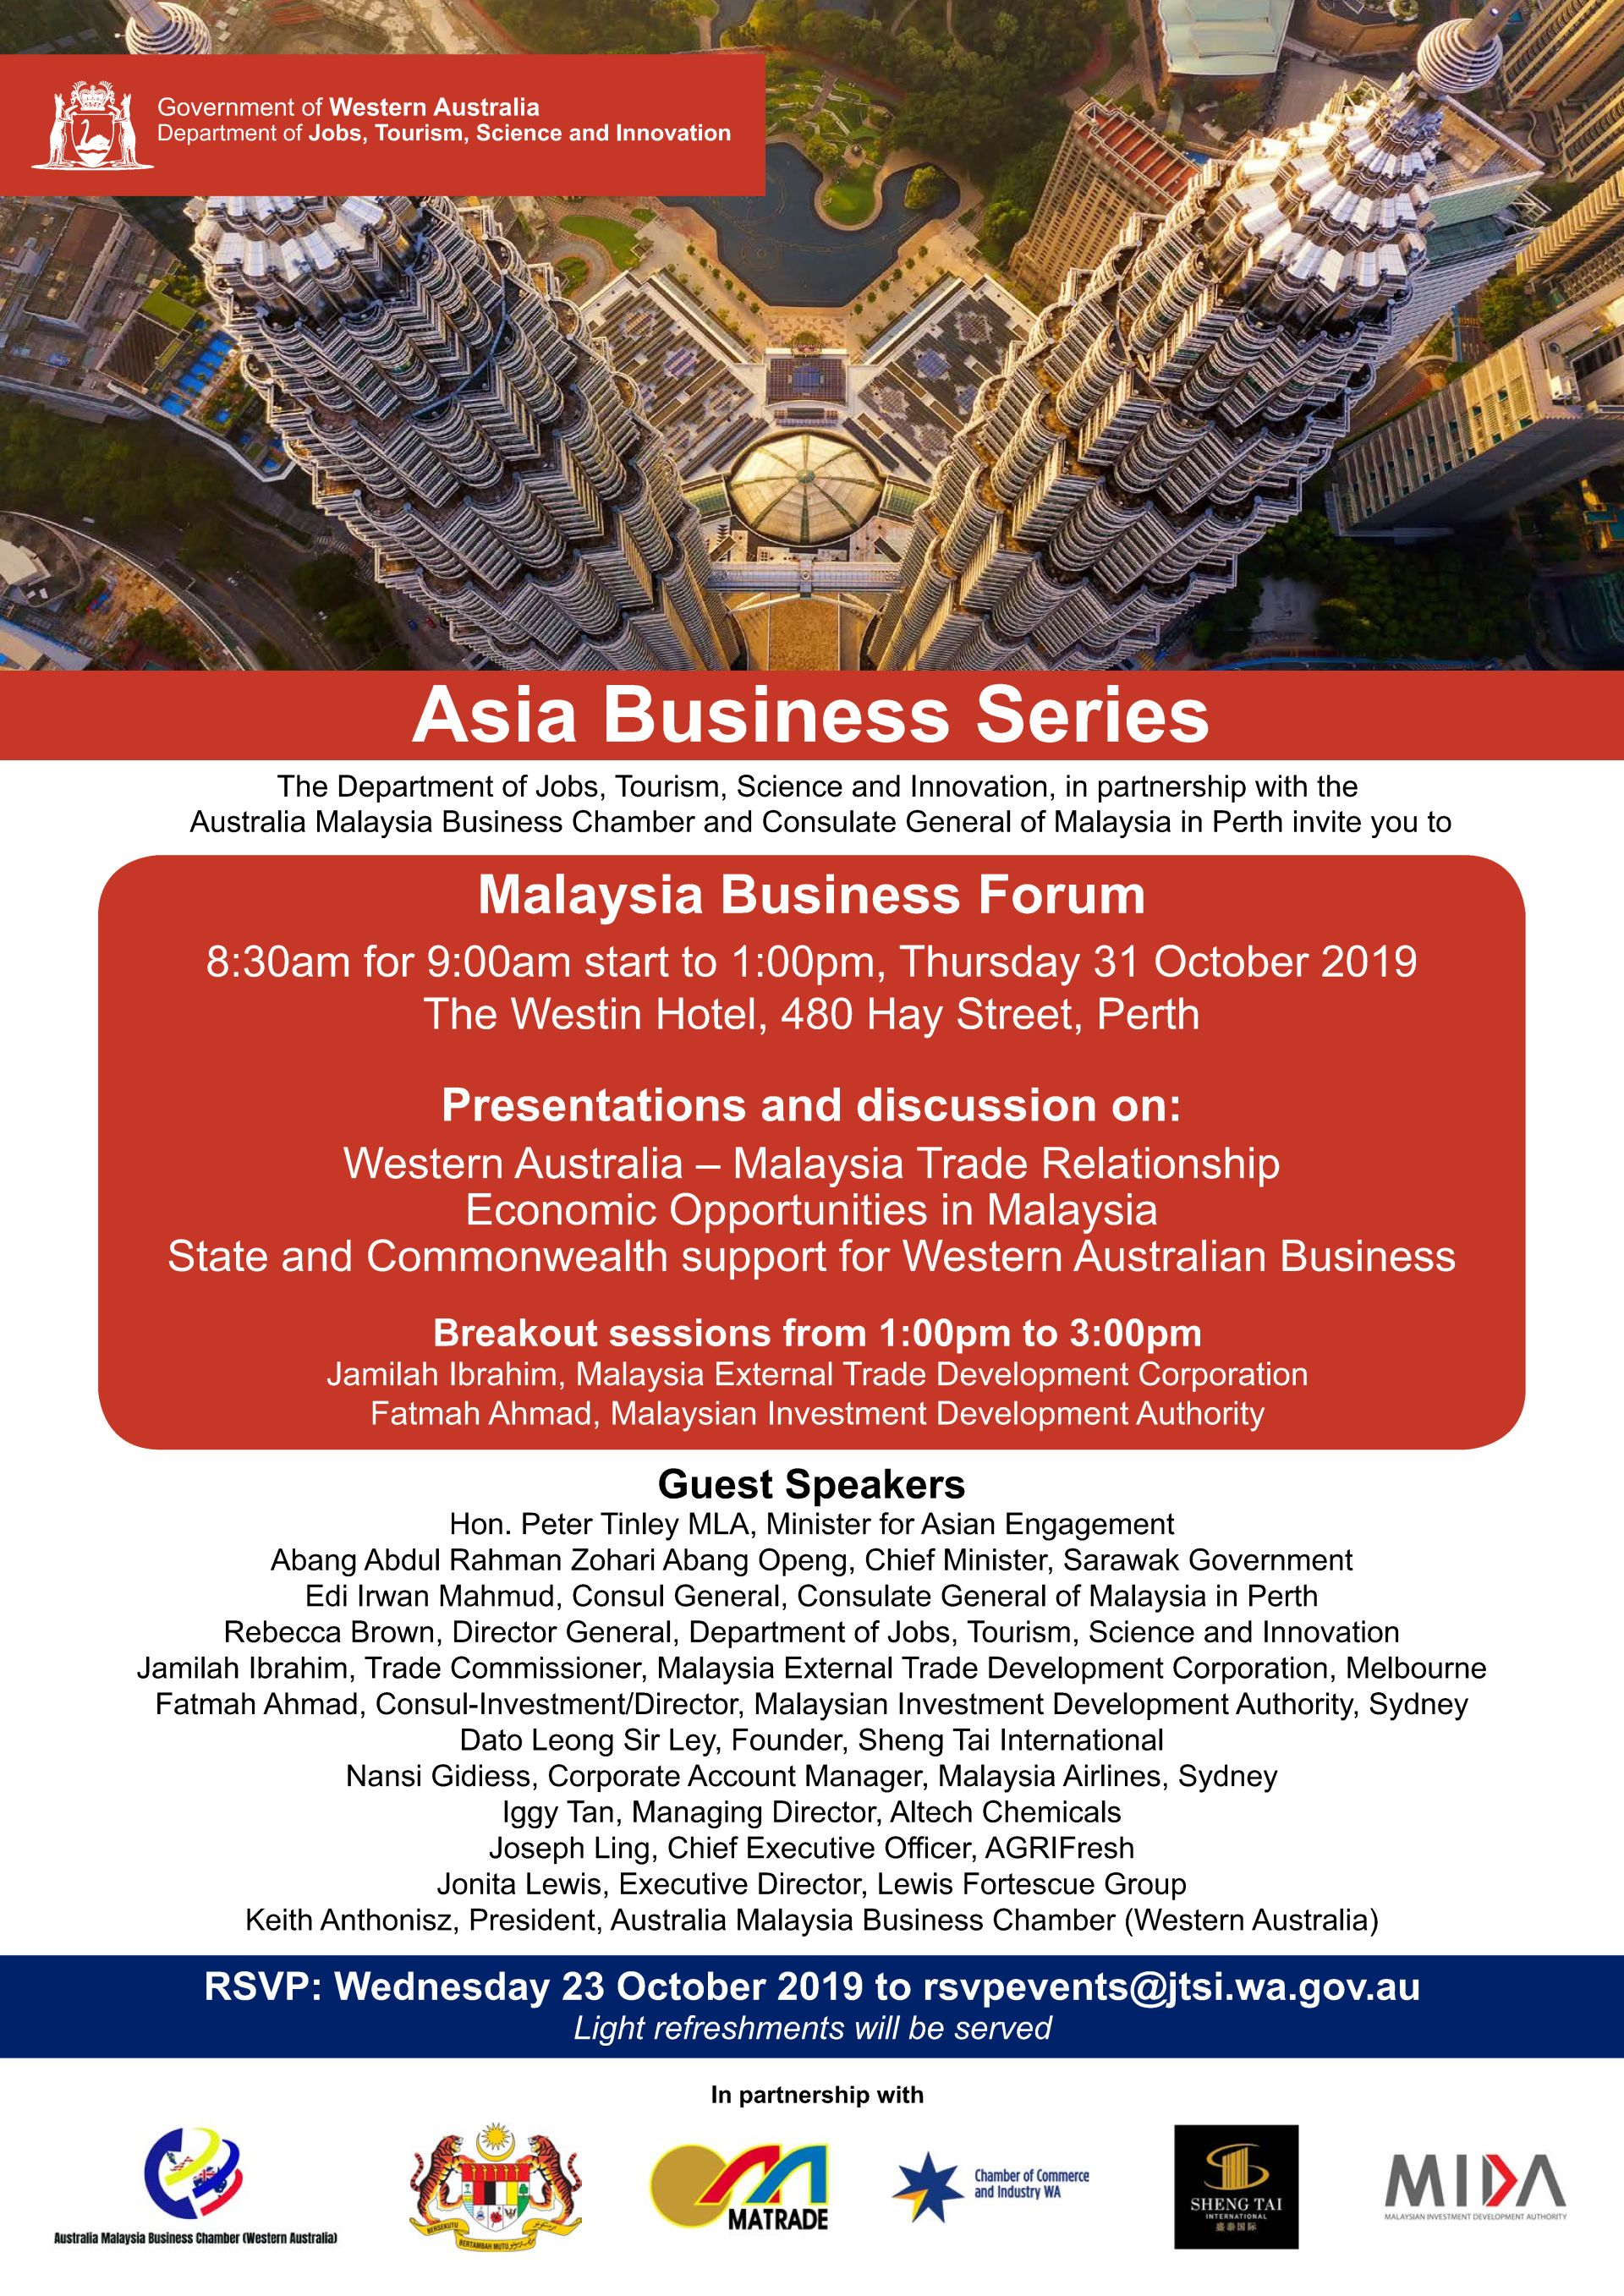 MALAYSIA BUSINESS FORUM - 31 OCTOBER 2019